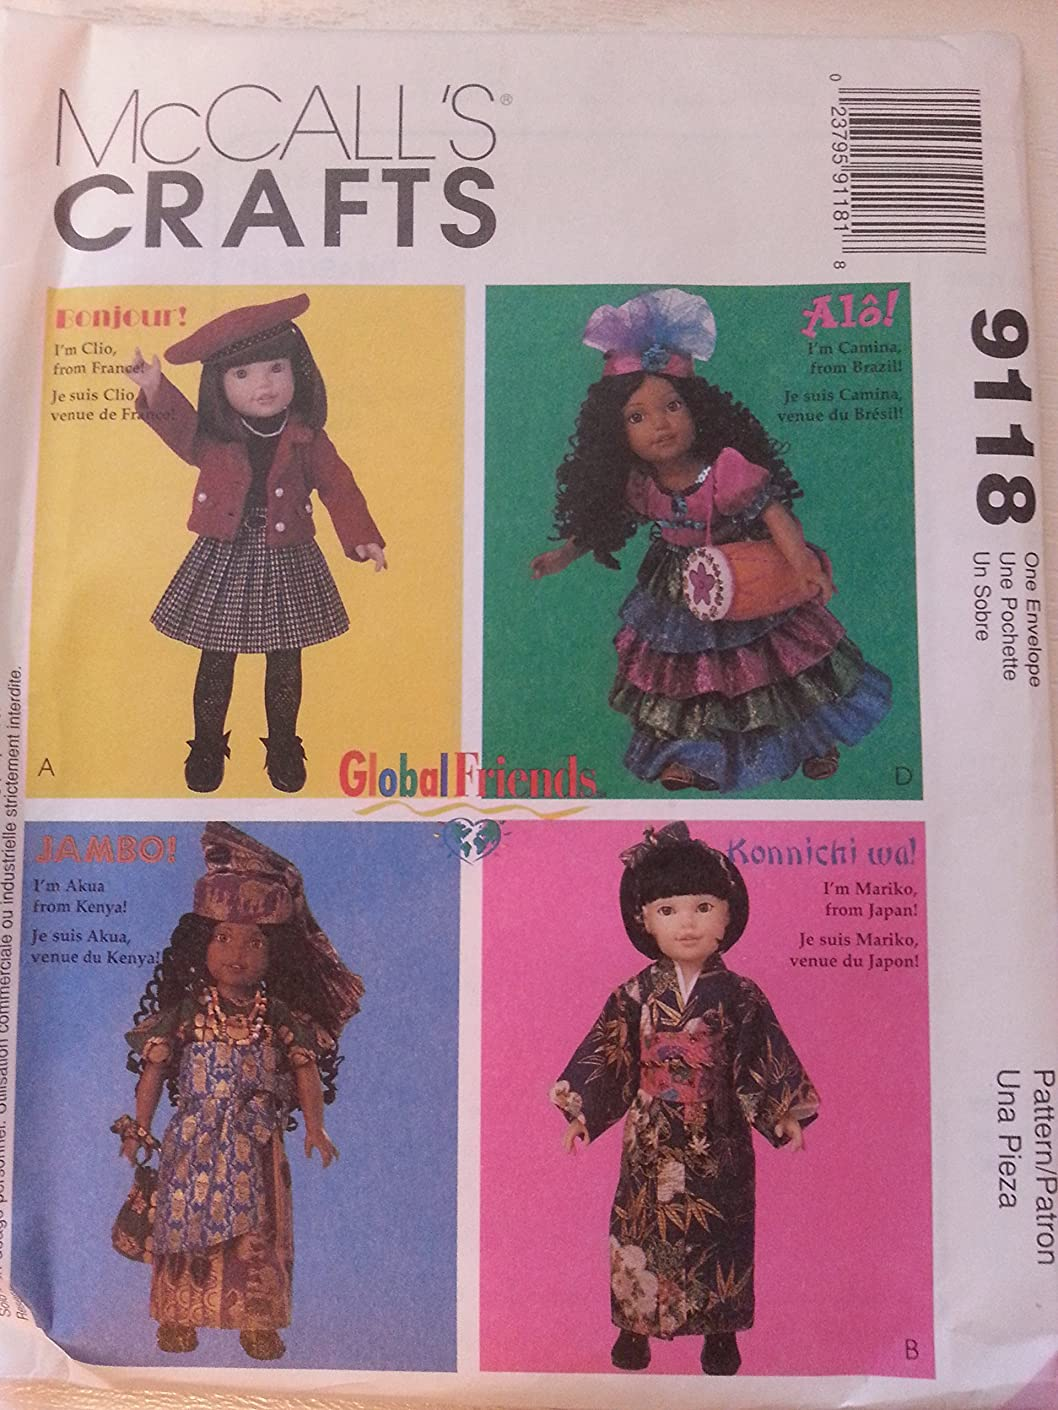 McCall's Crafts Pattern 9118 Global Friends Doll Clothes for 14